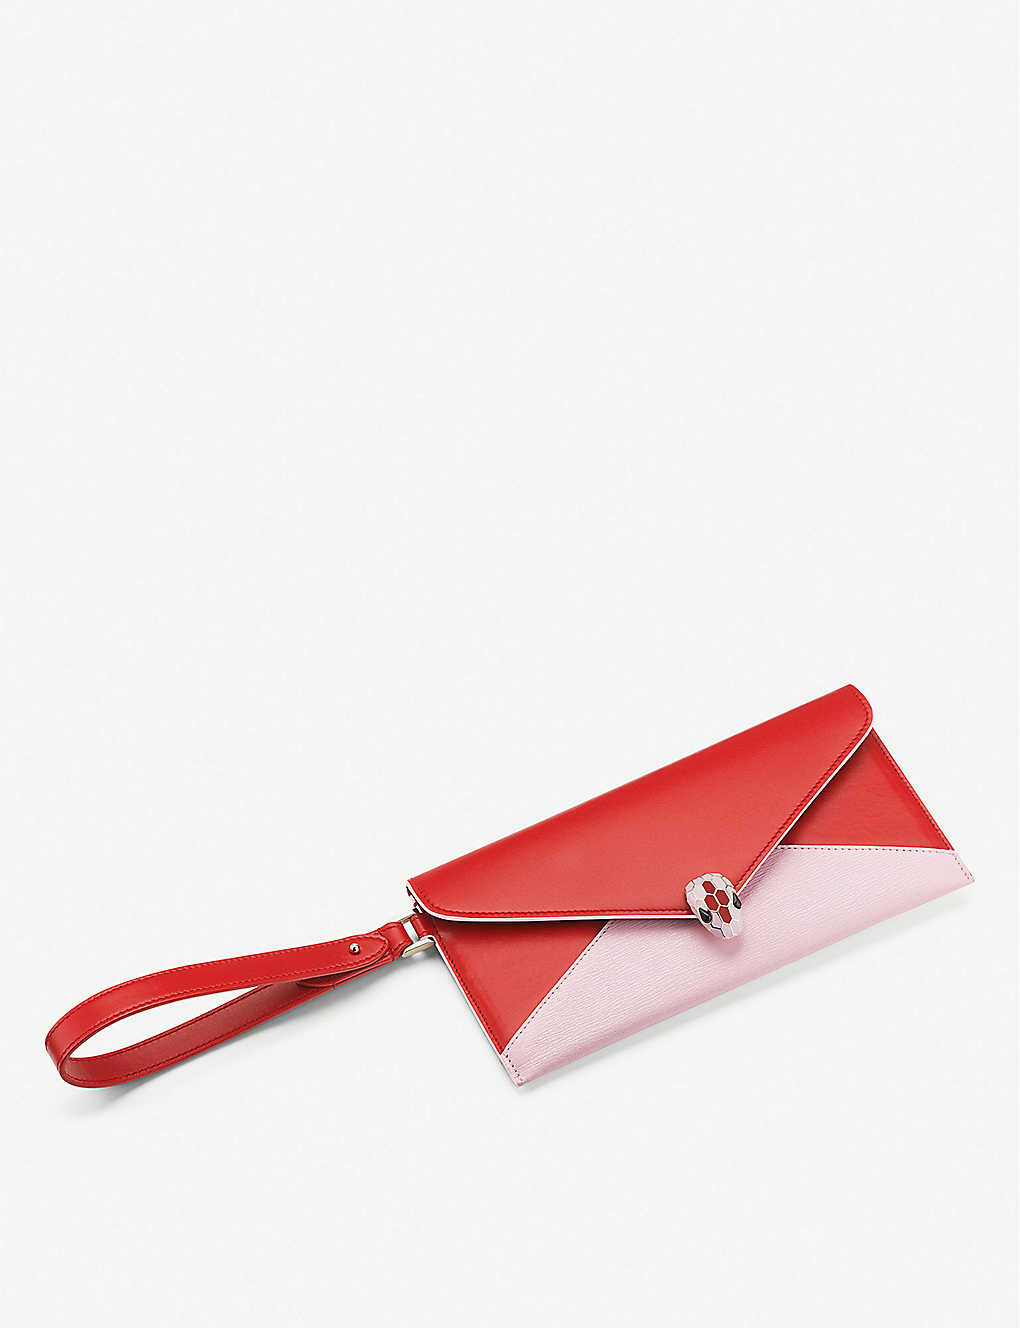 BVLGARI: Serpenti Forever leather envelope pouch